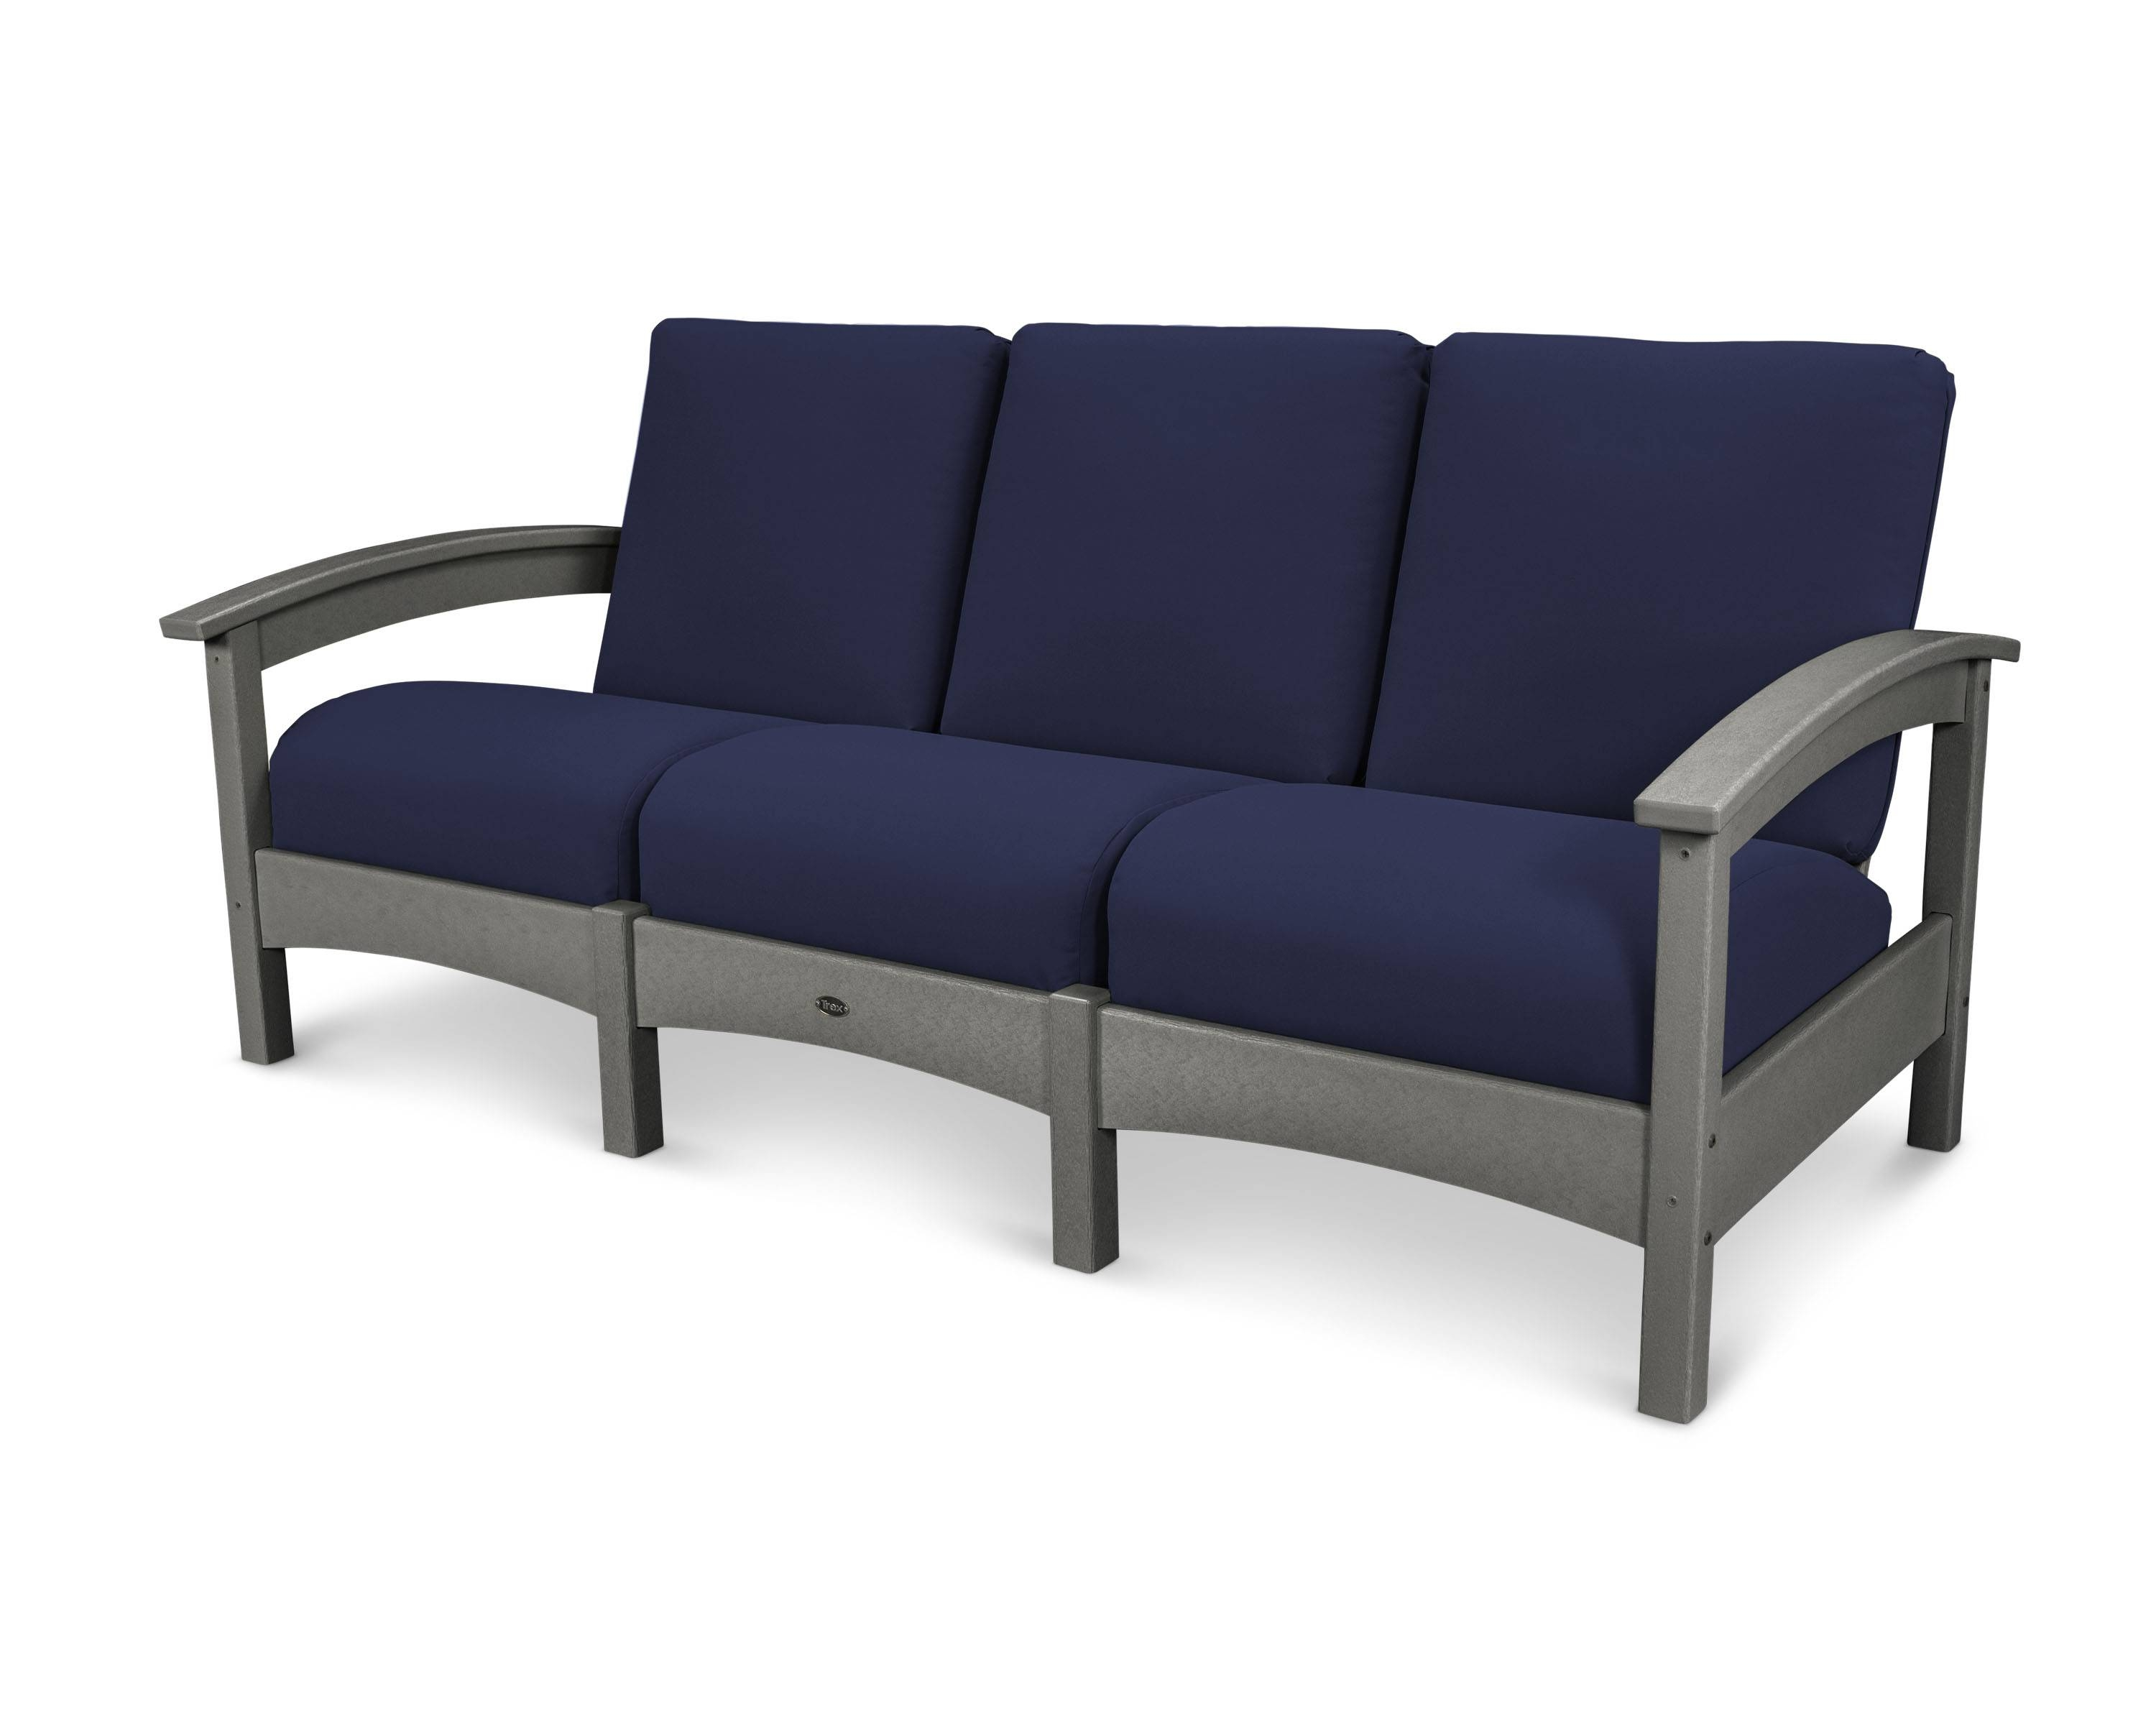 Rockport Club Sofa | Trex® Outdoor Furniture™ regarding Bench Style Sofas (Image 7 of 15)